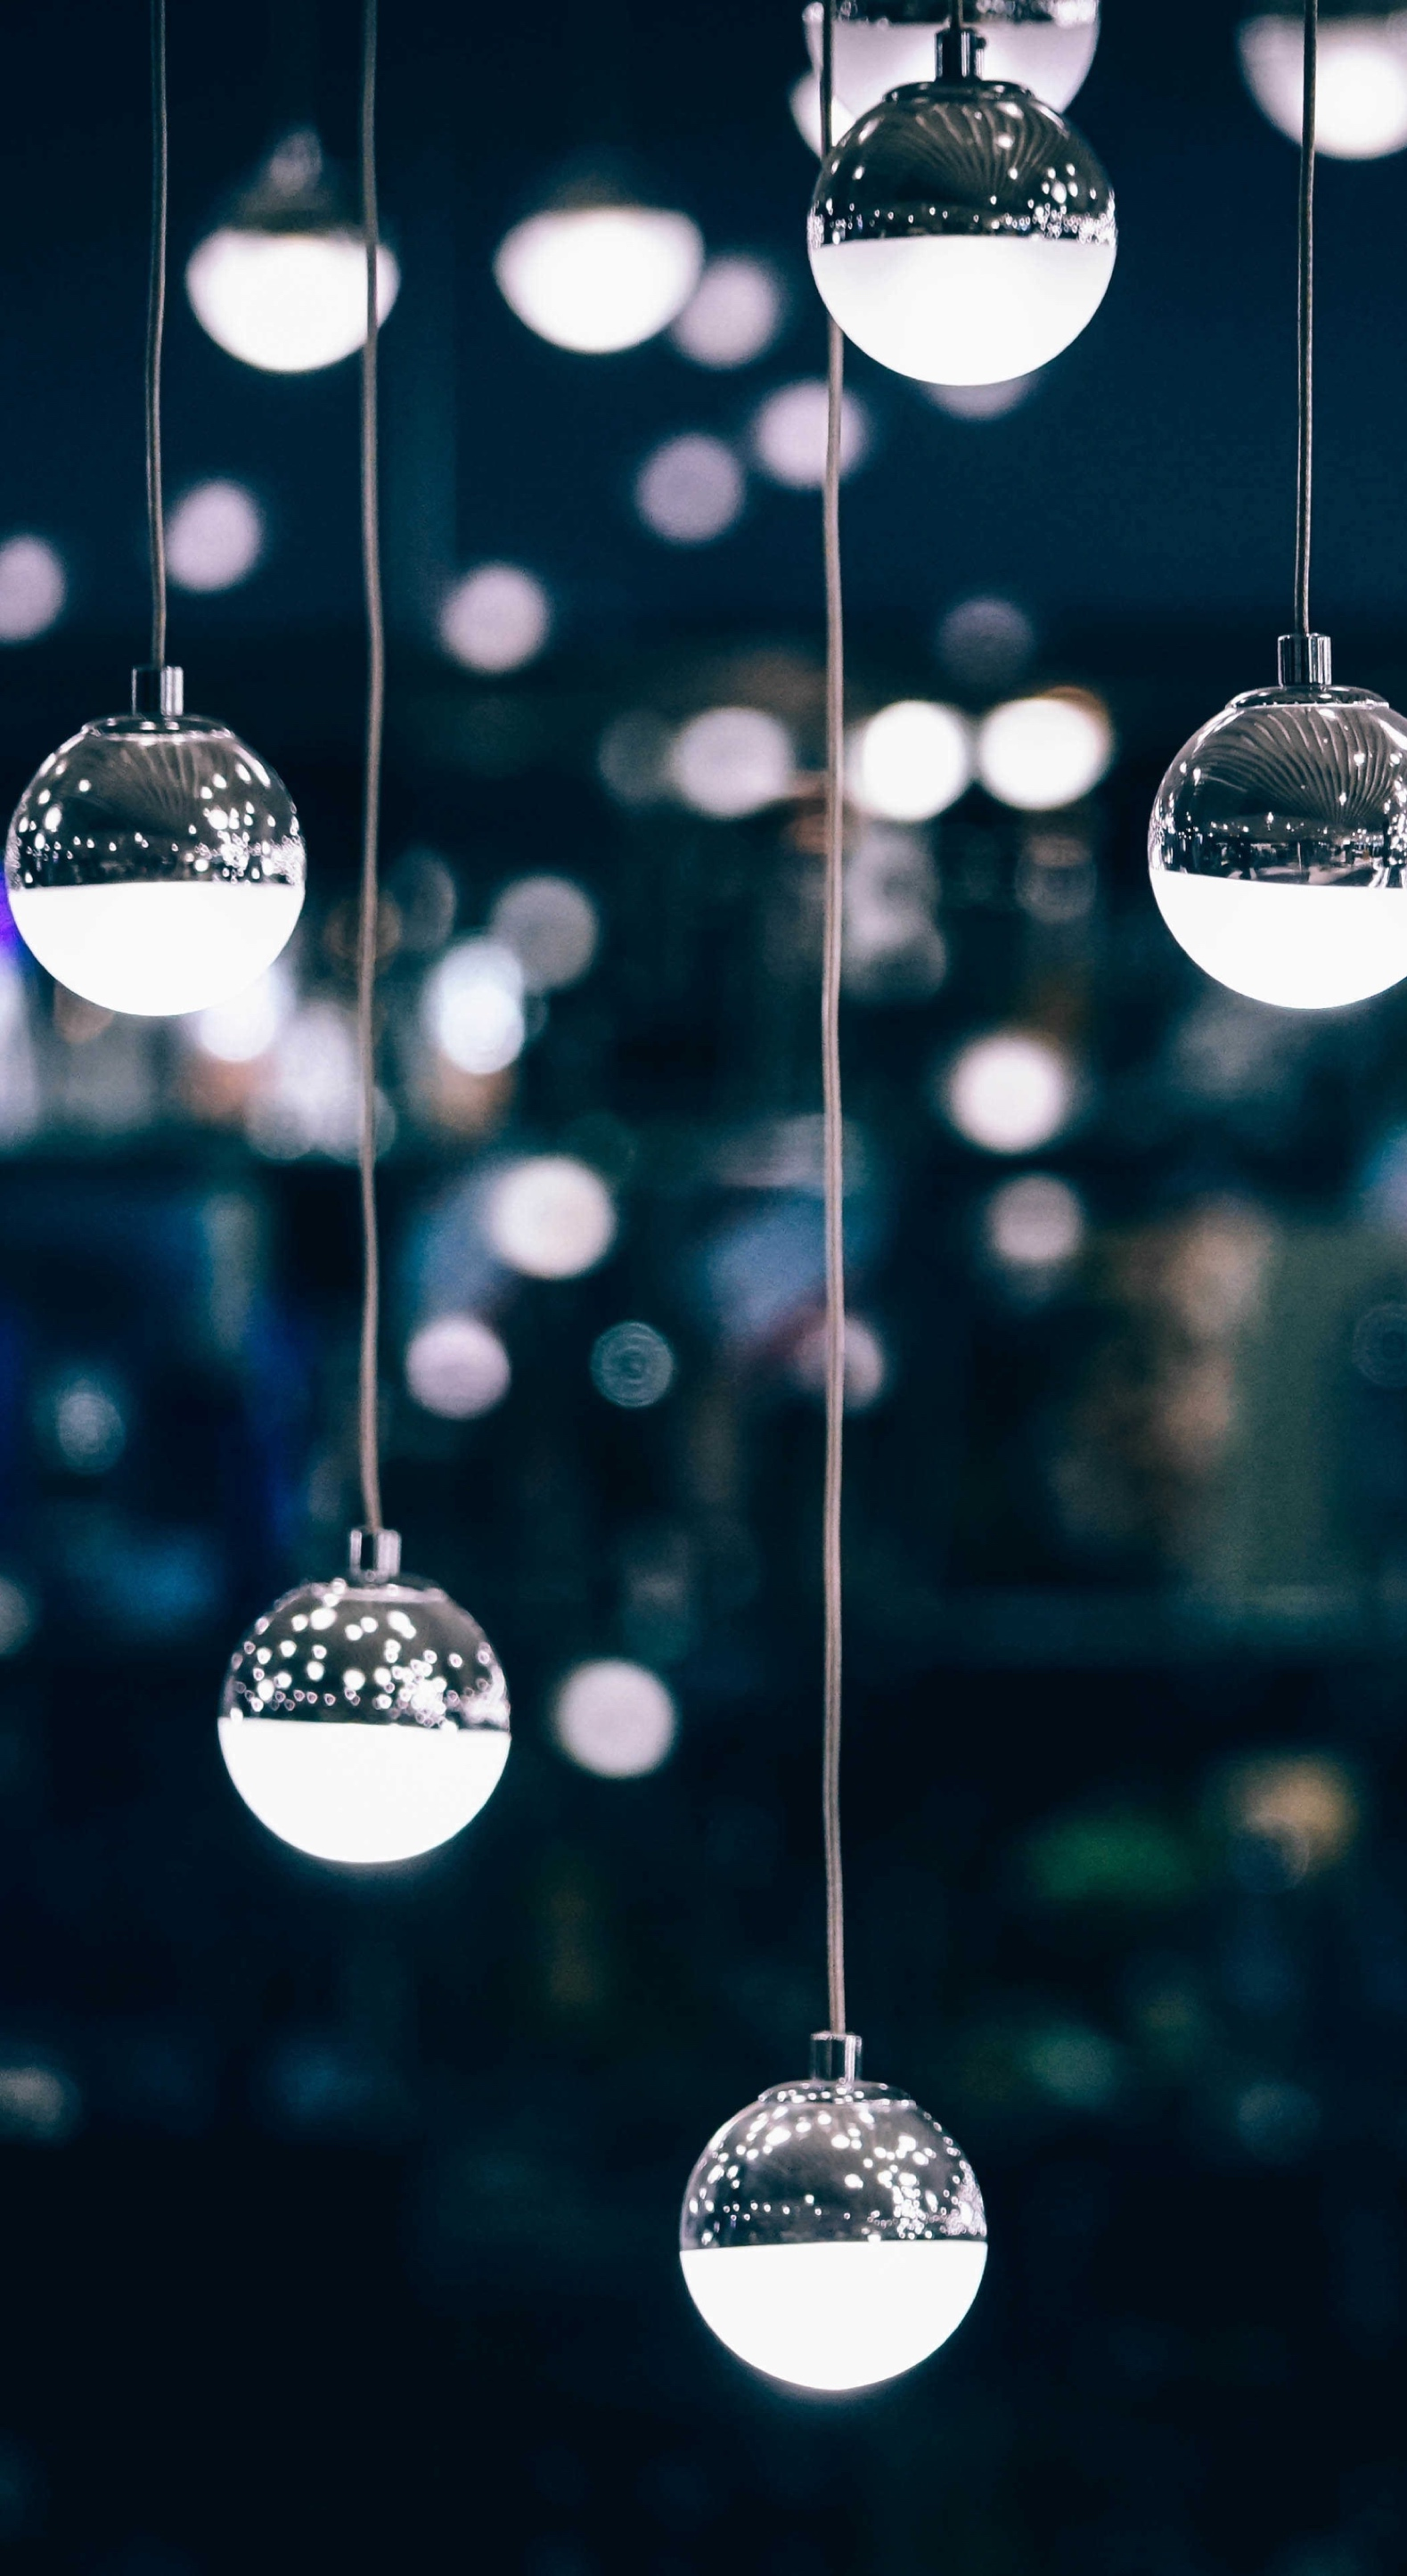 Wallpaper Weekends Holiday Light Drops for Mac, iPad, iPhone, and ...